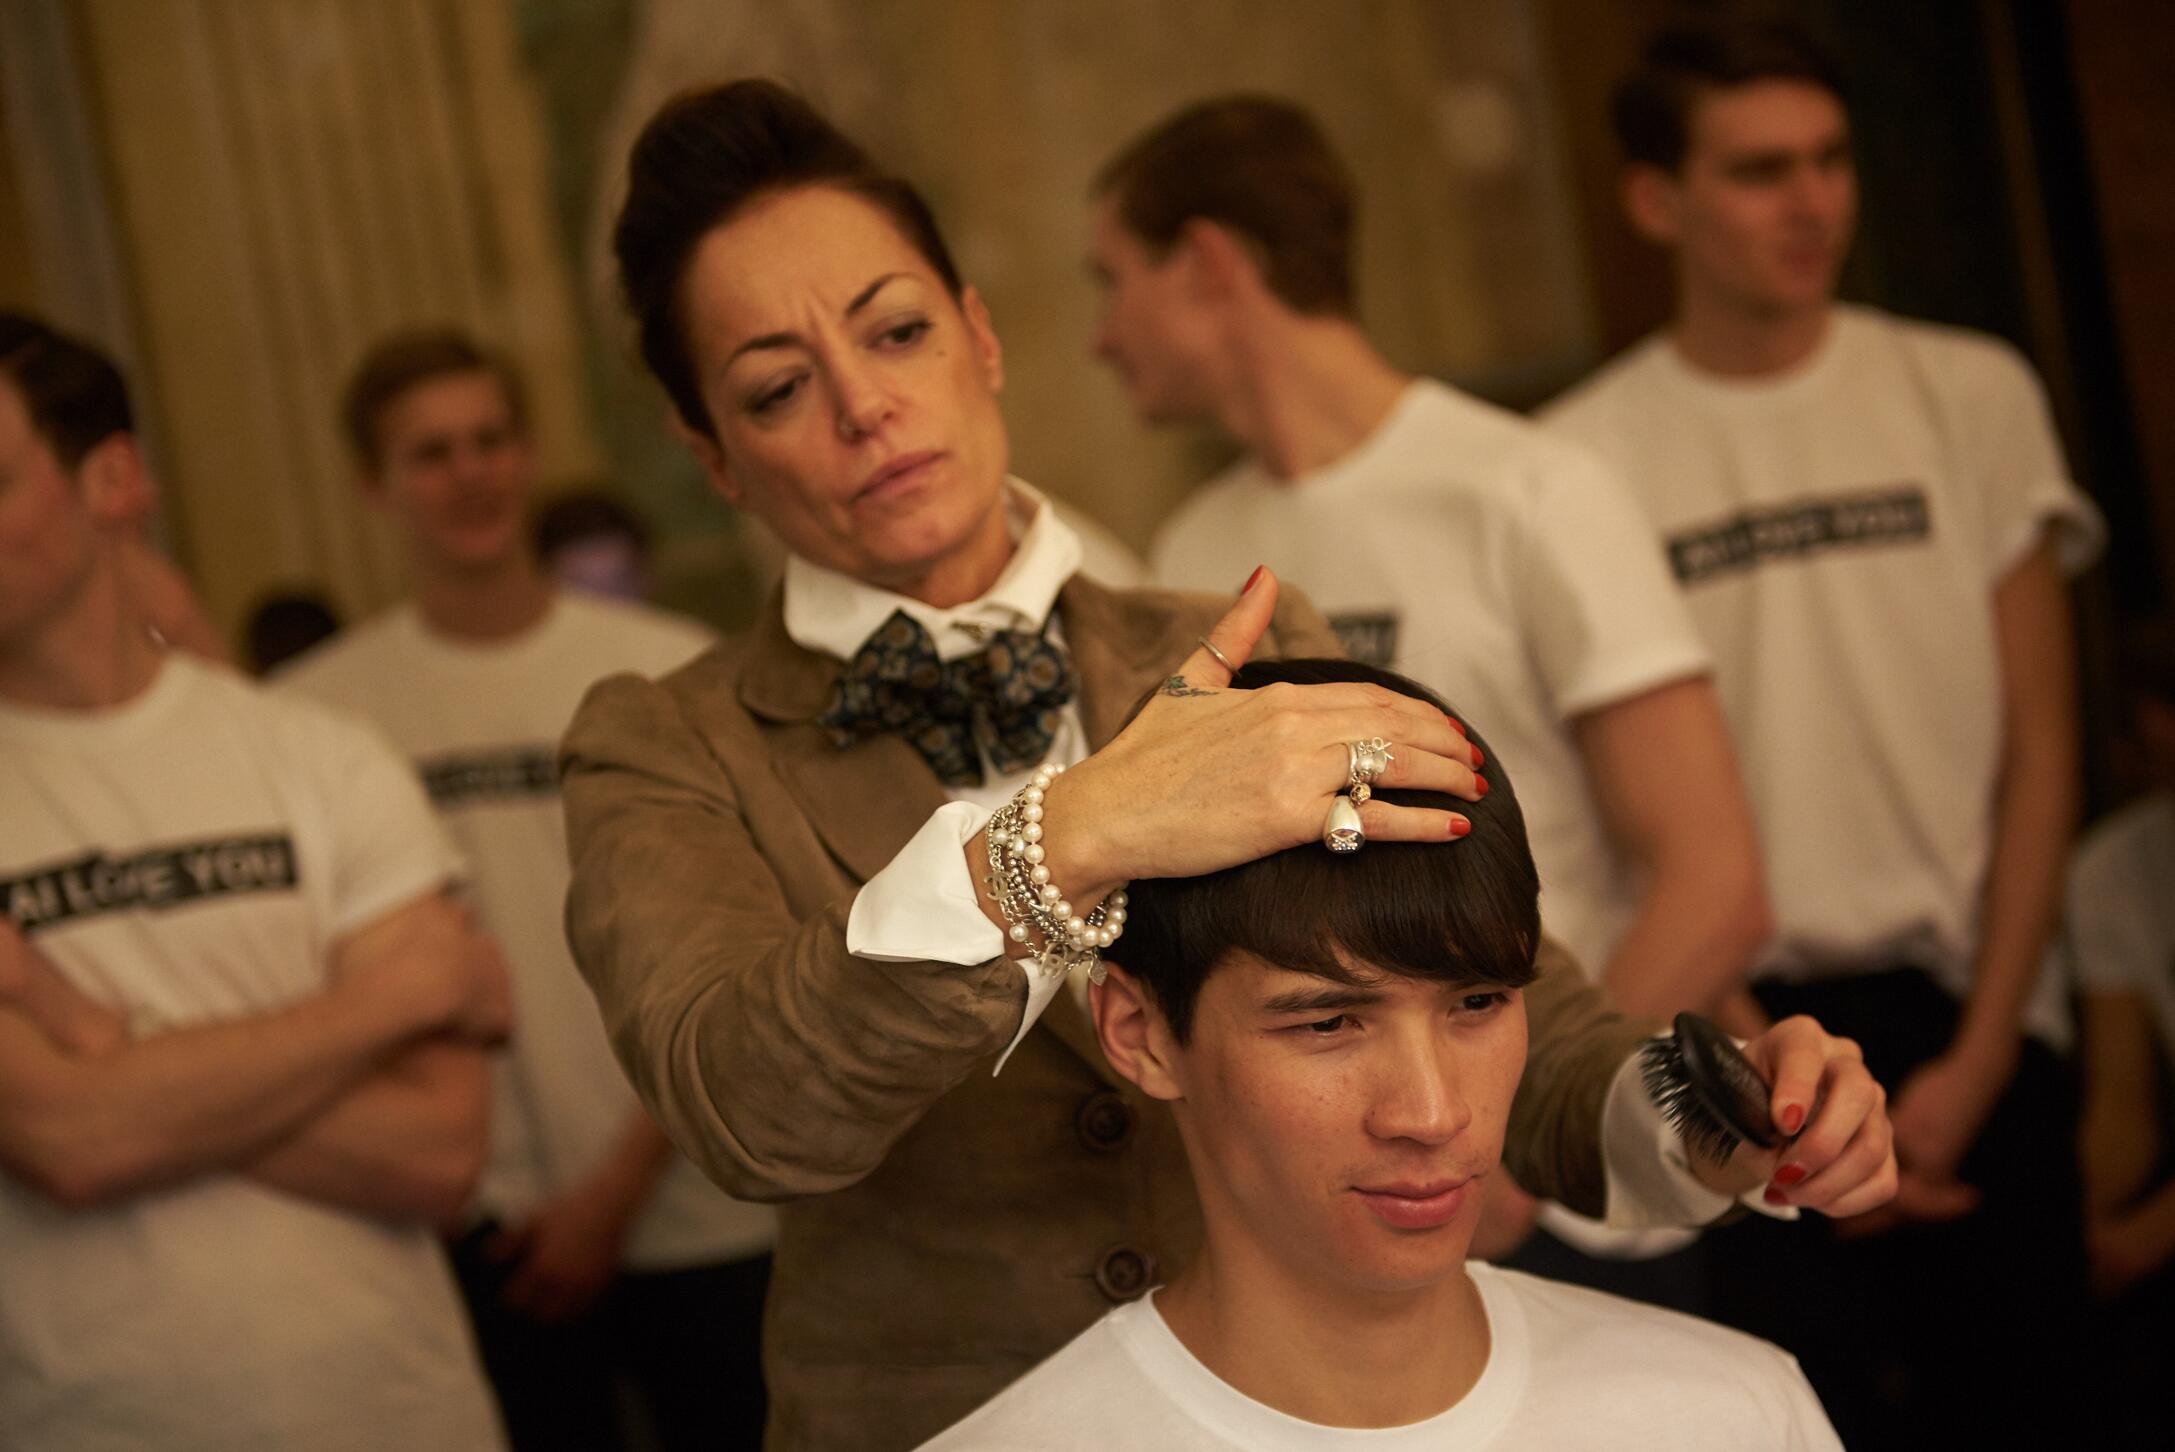 Backstage Hair Style Fashion Man Model